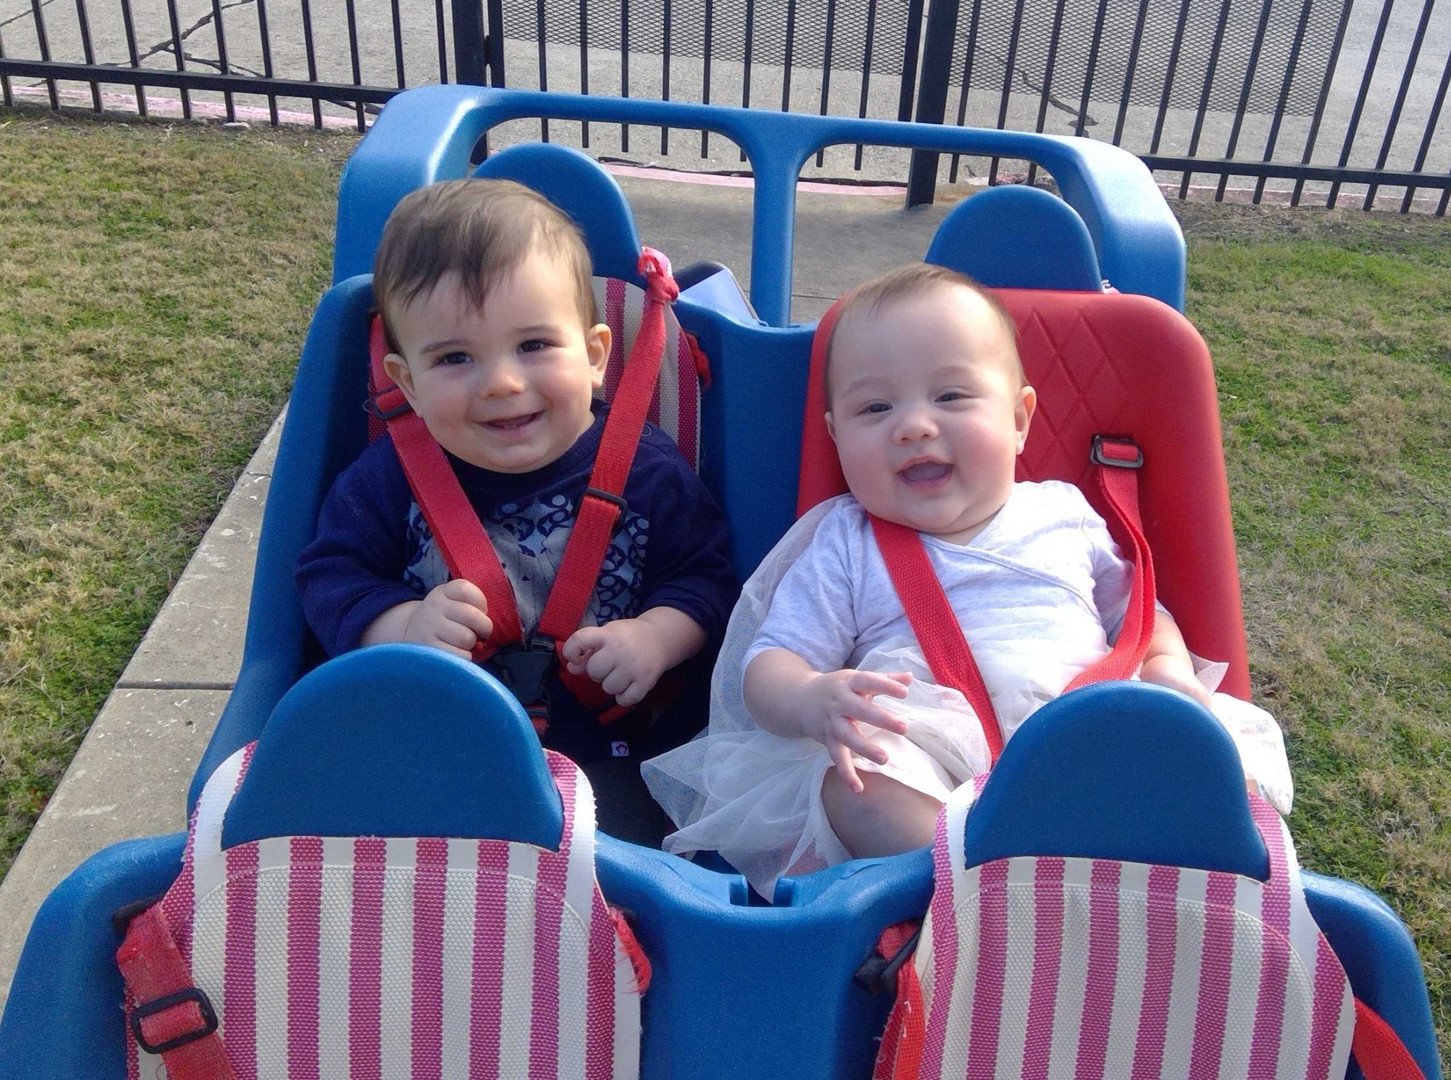 Two smiling infants taking a ride in the buggy at the local daycare